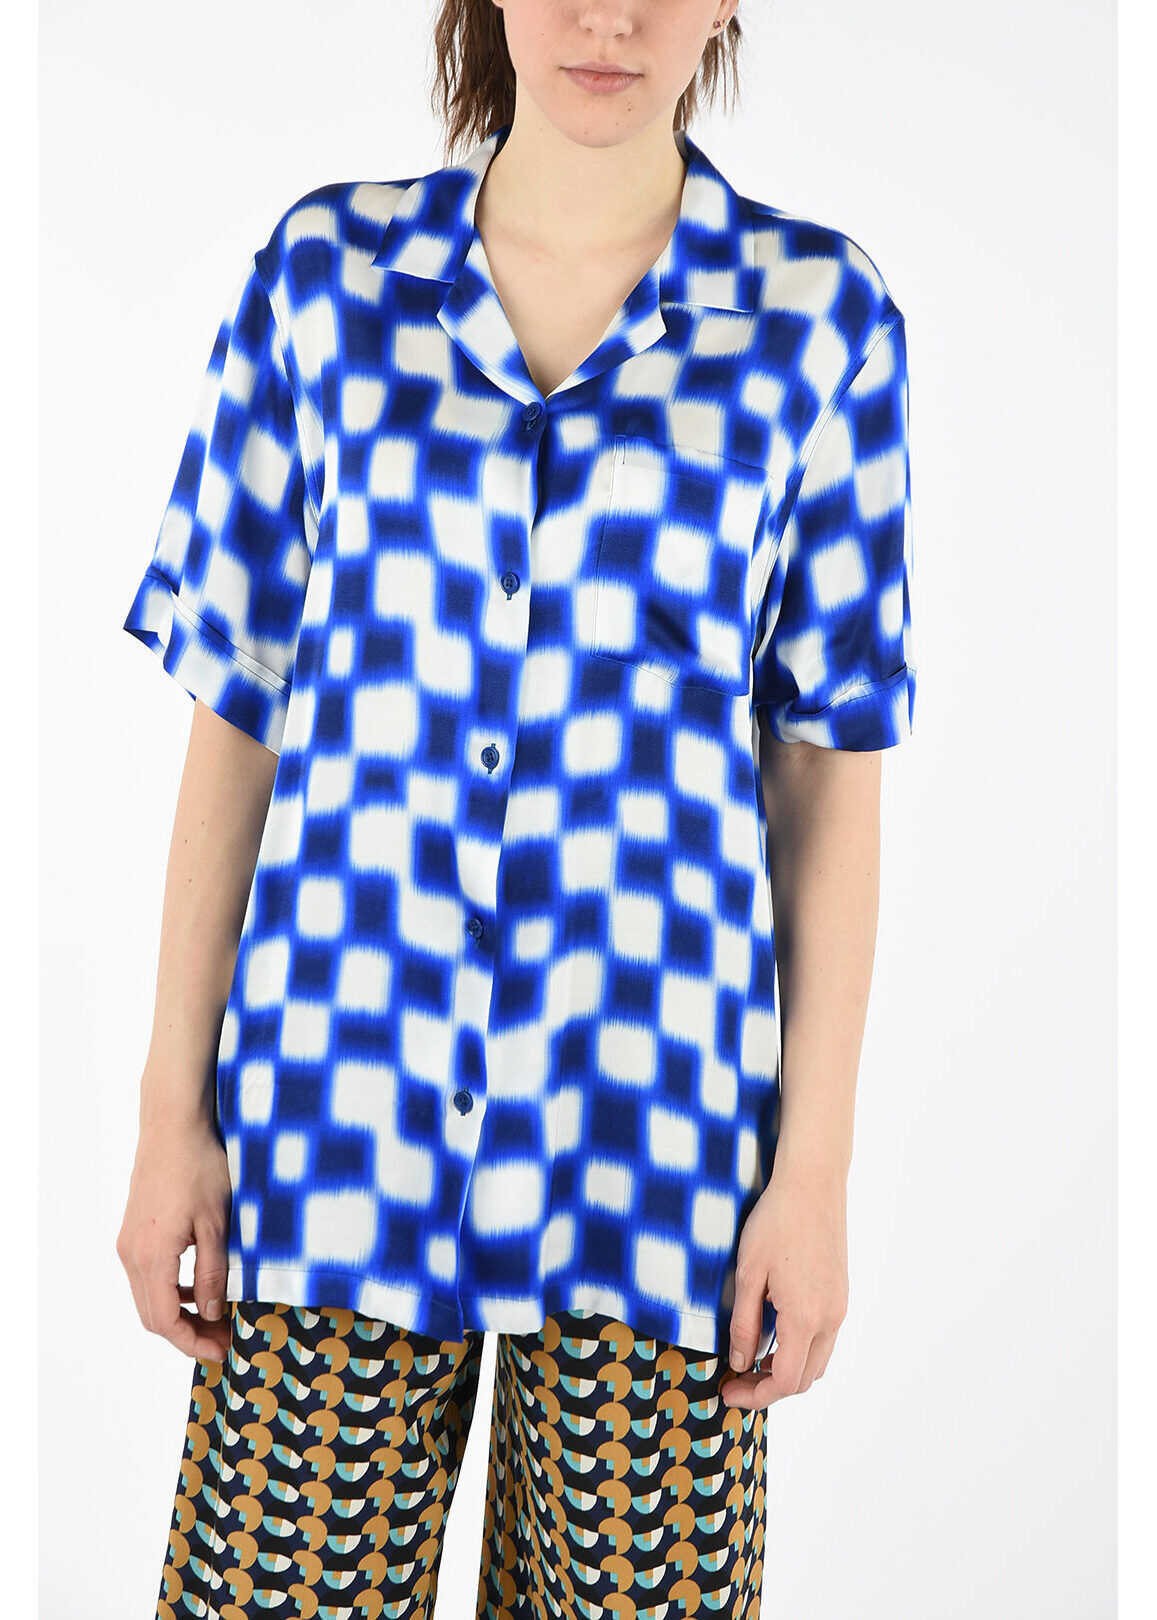 Dries Van Noten Checked Short Sleeve Shirt BLUE